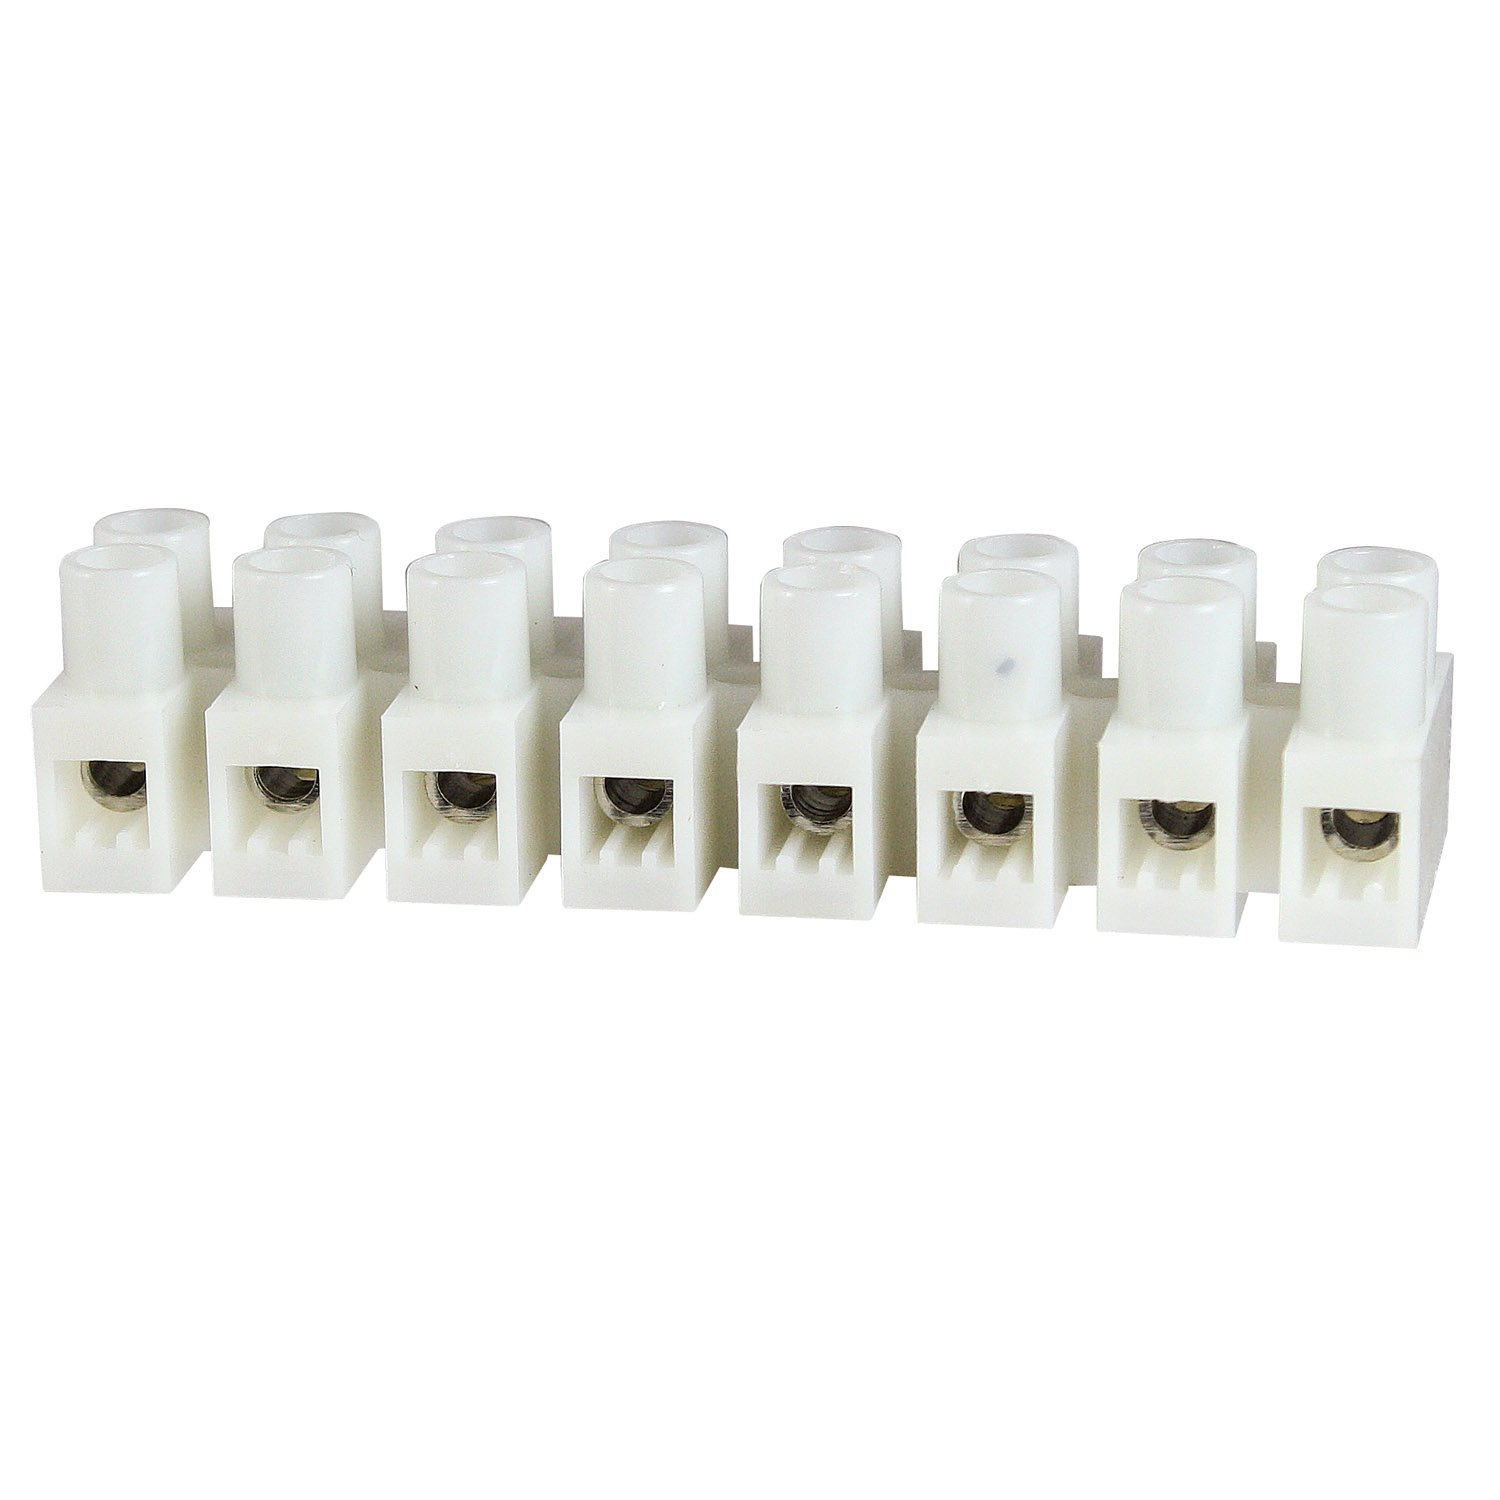 ASI MY8HW-1.2-8.0-8P  Euro Style Terminal Strip Panel Mount, 8 Position, 8 mm Pitch, 20  Amp, 600V, 20 - 12 AWG, White Nylon, Horizontal Wire Entry (Pack of 25) by Automation Systems Interconnect